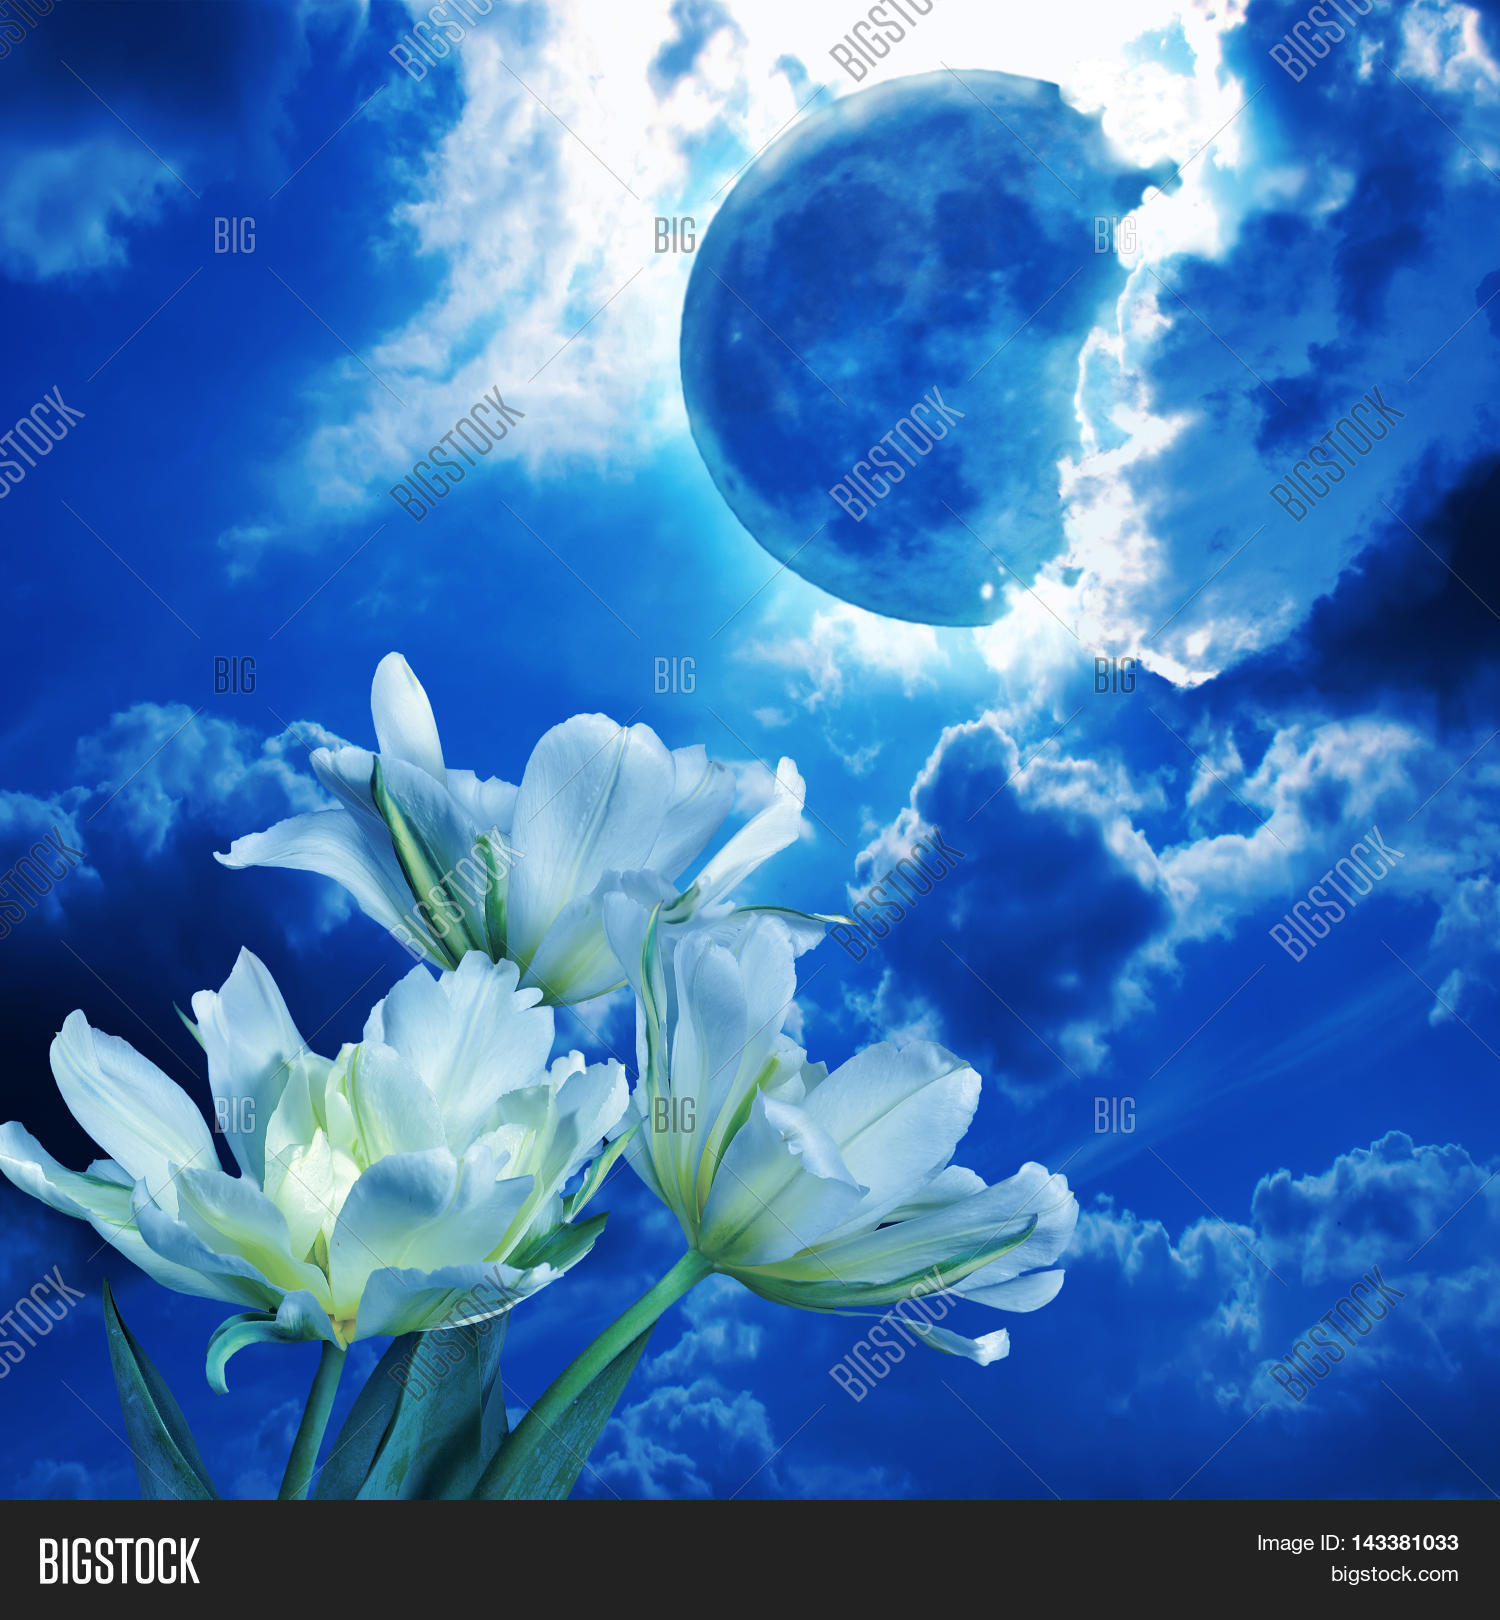 Full Moon Glowing Among The Fluffy Clouds In Night Sky Shines Blue Light White Flowers